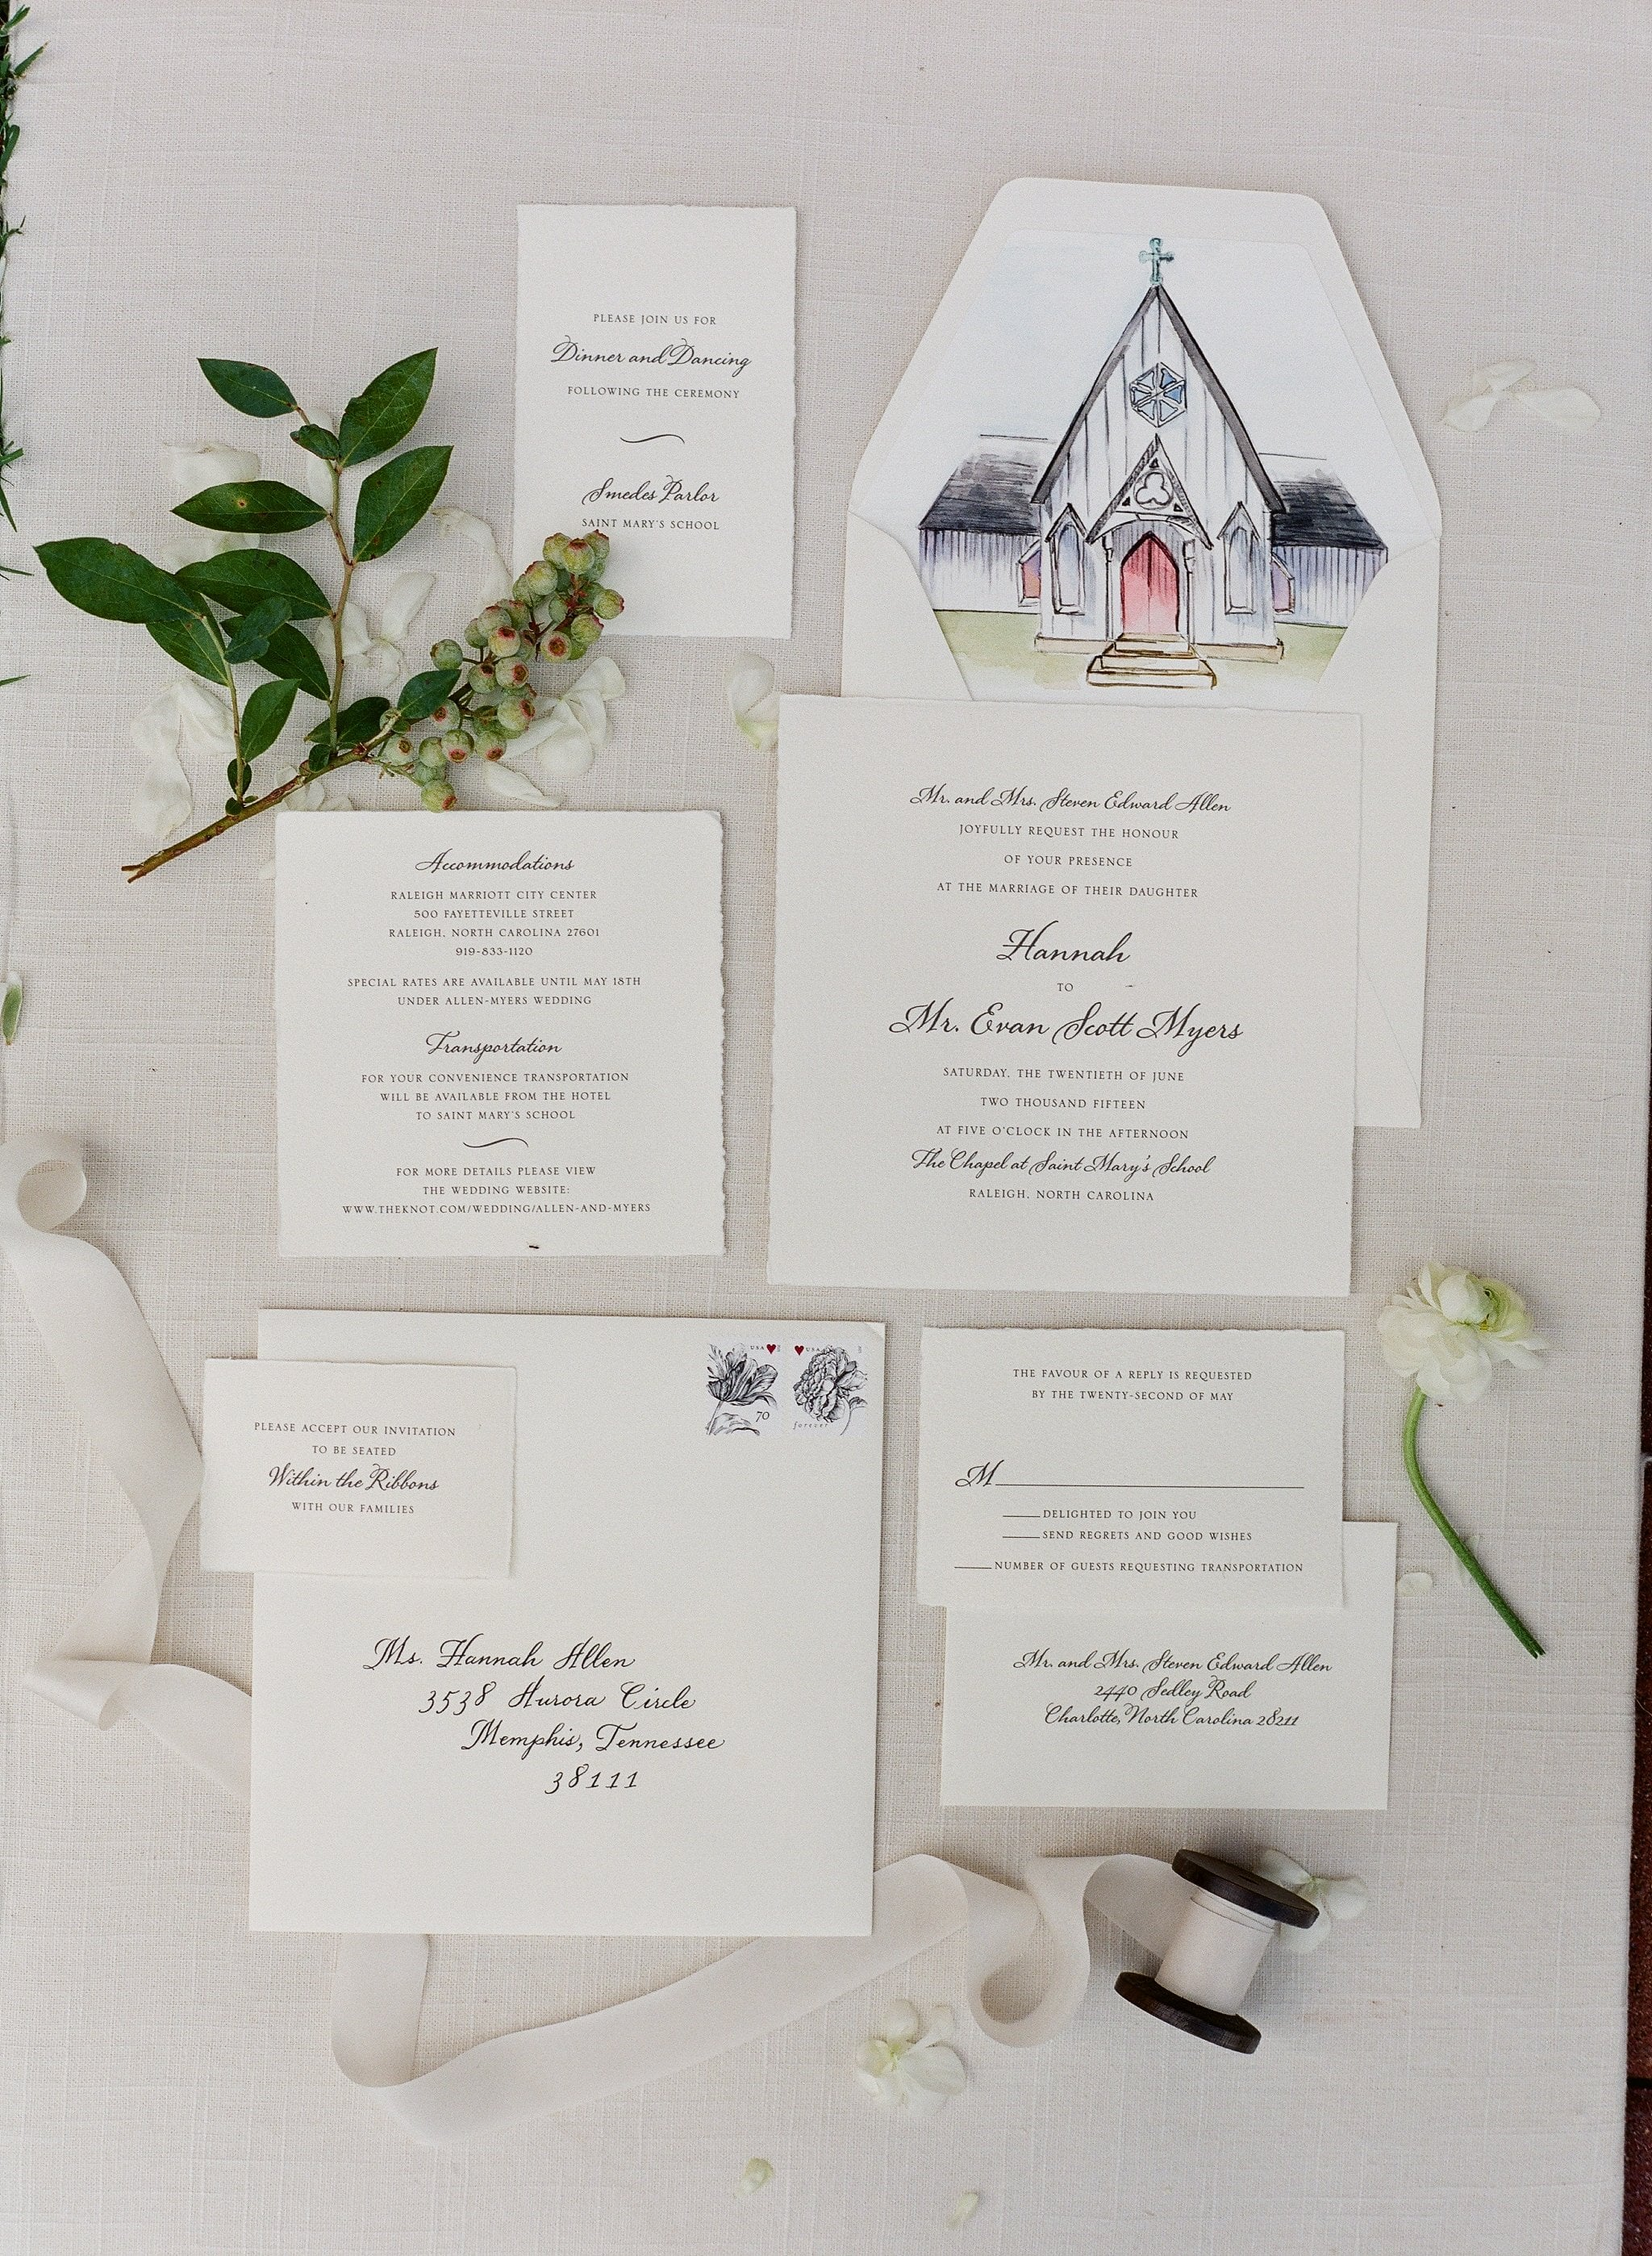 Hannah designed the sketch featured on her wedding invitation suite of Saint Mary's Chapel.